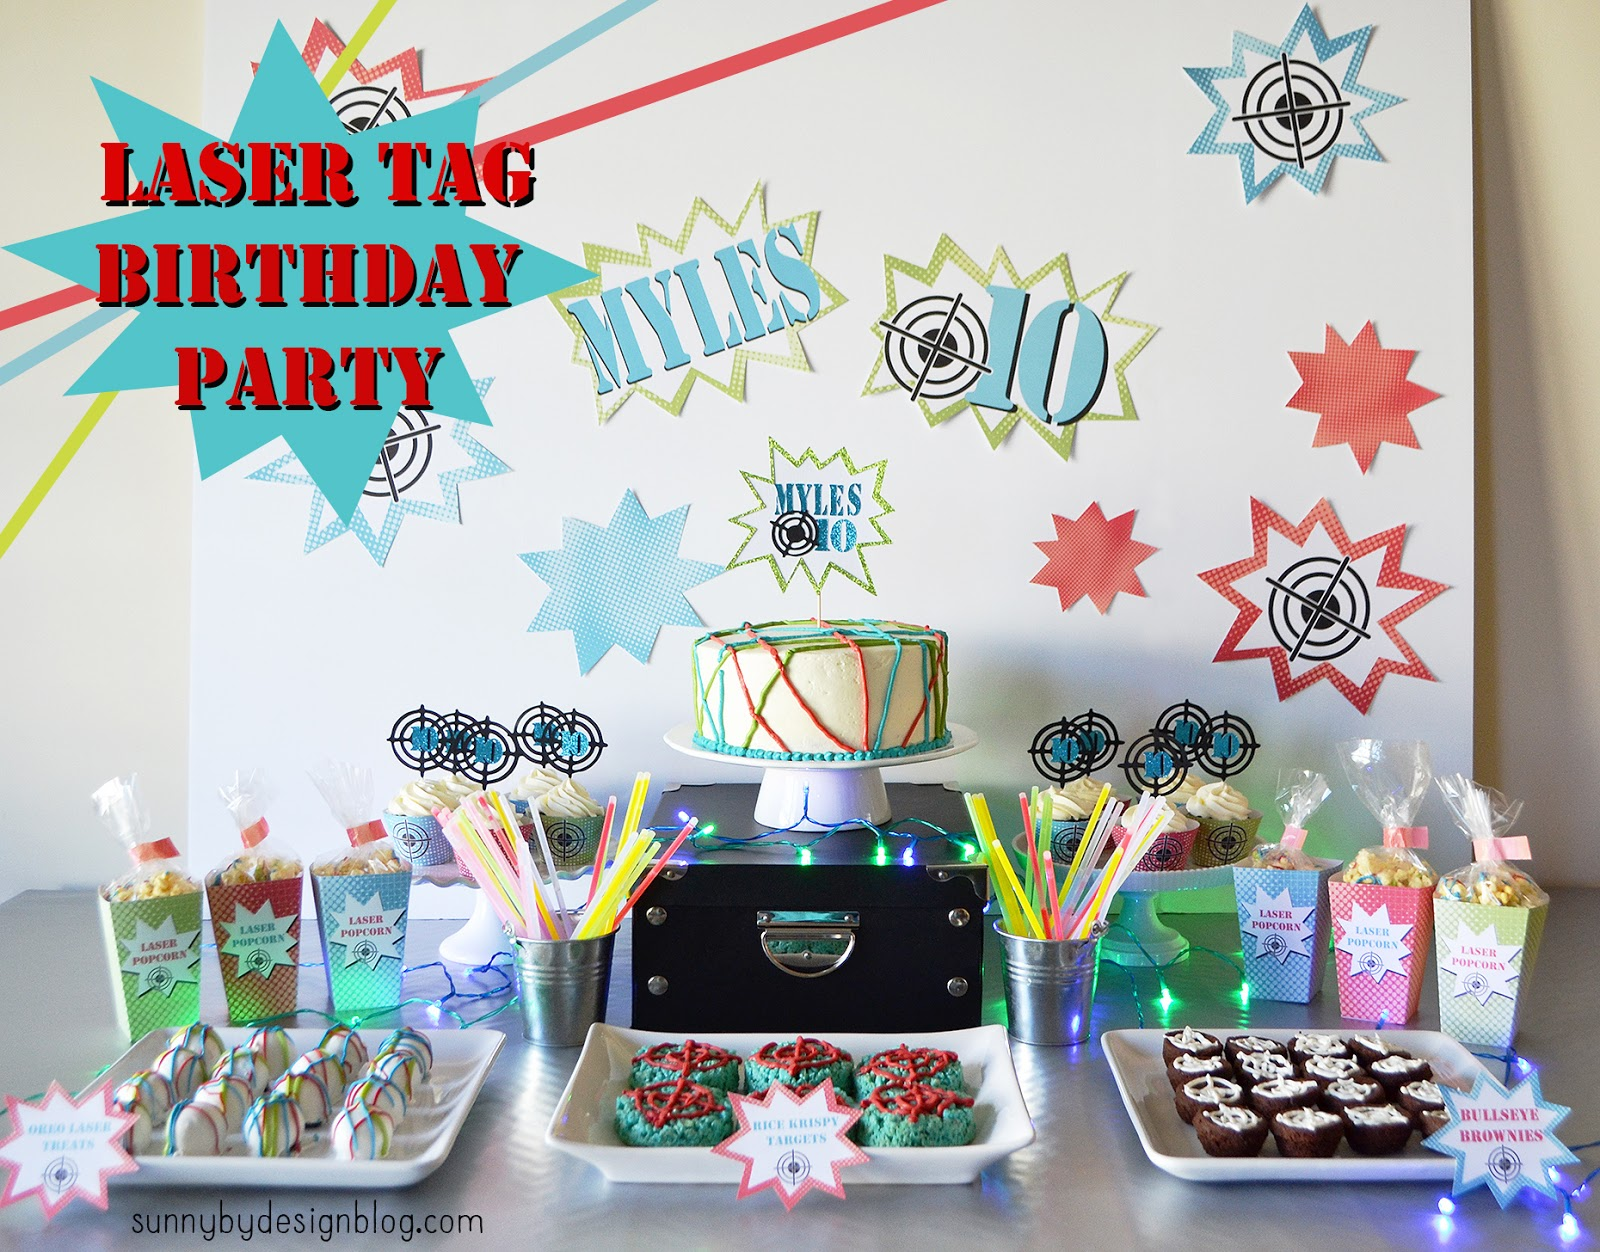 tag birthday party ; laser%2520tag%2520birthday%2520party%2520favors%2520;%2520title